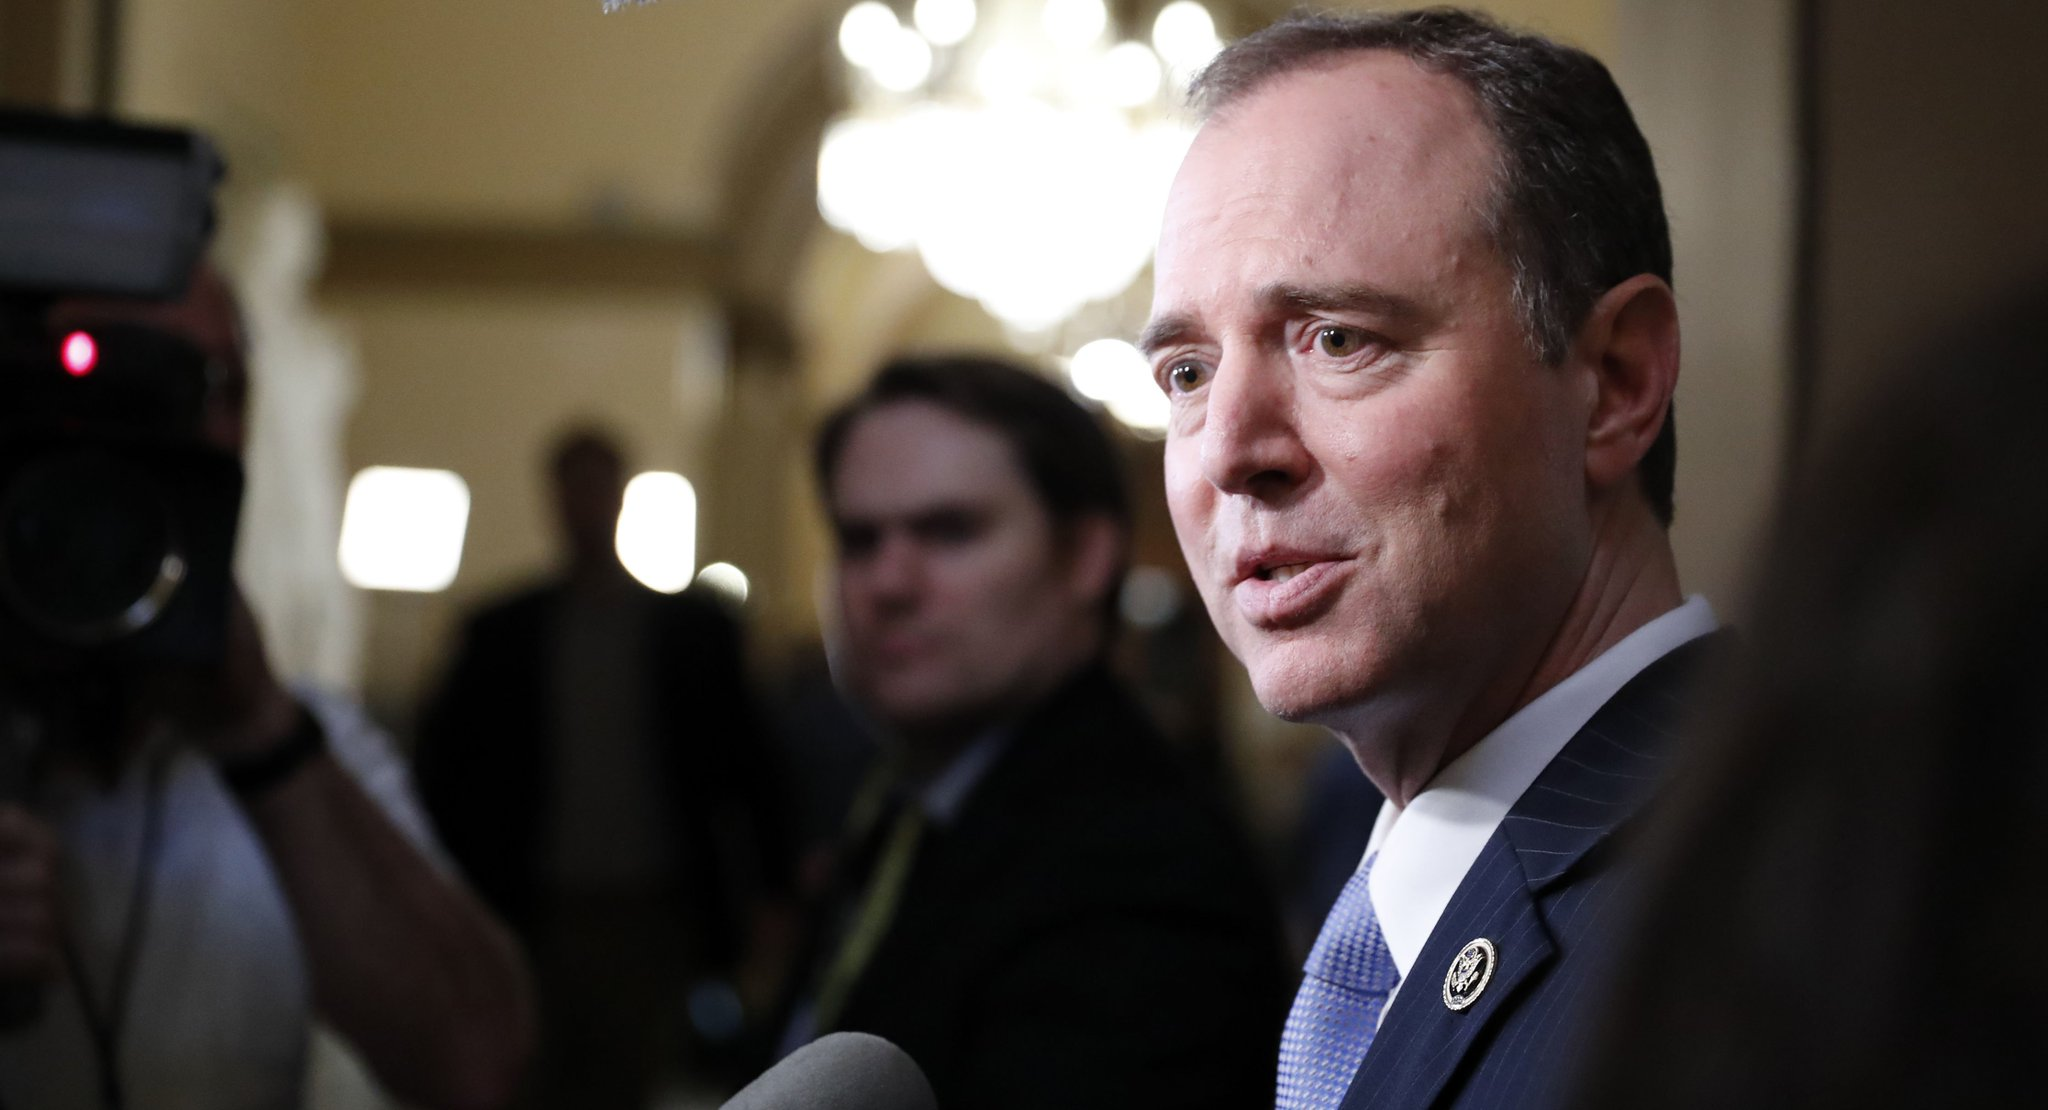 Schiff: 'We have a seriously flawed human being in the Oval Office' https://t.co/84U8ongDiv https://t.co/JeHqSNAC3D